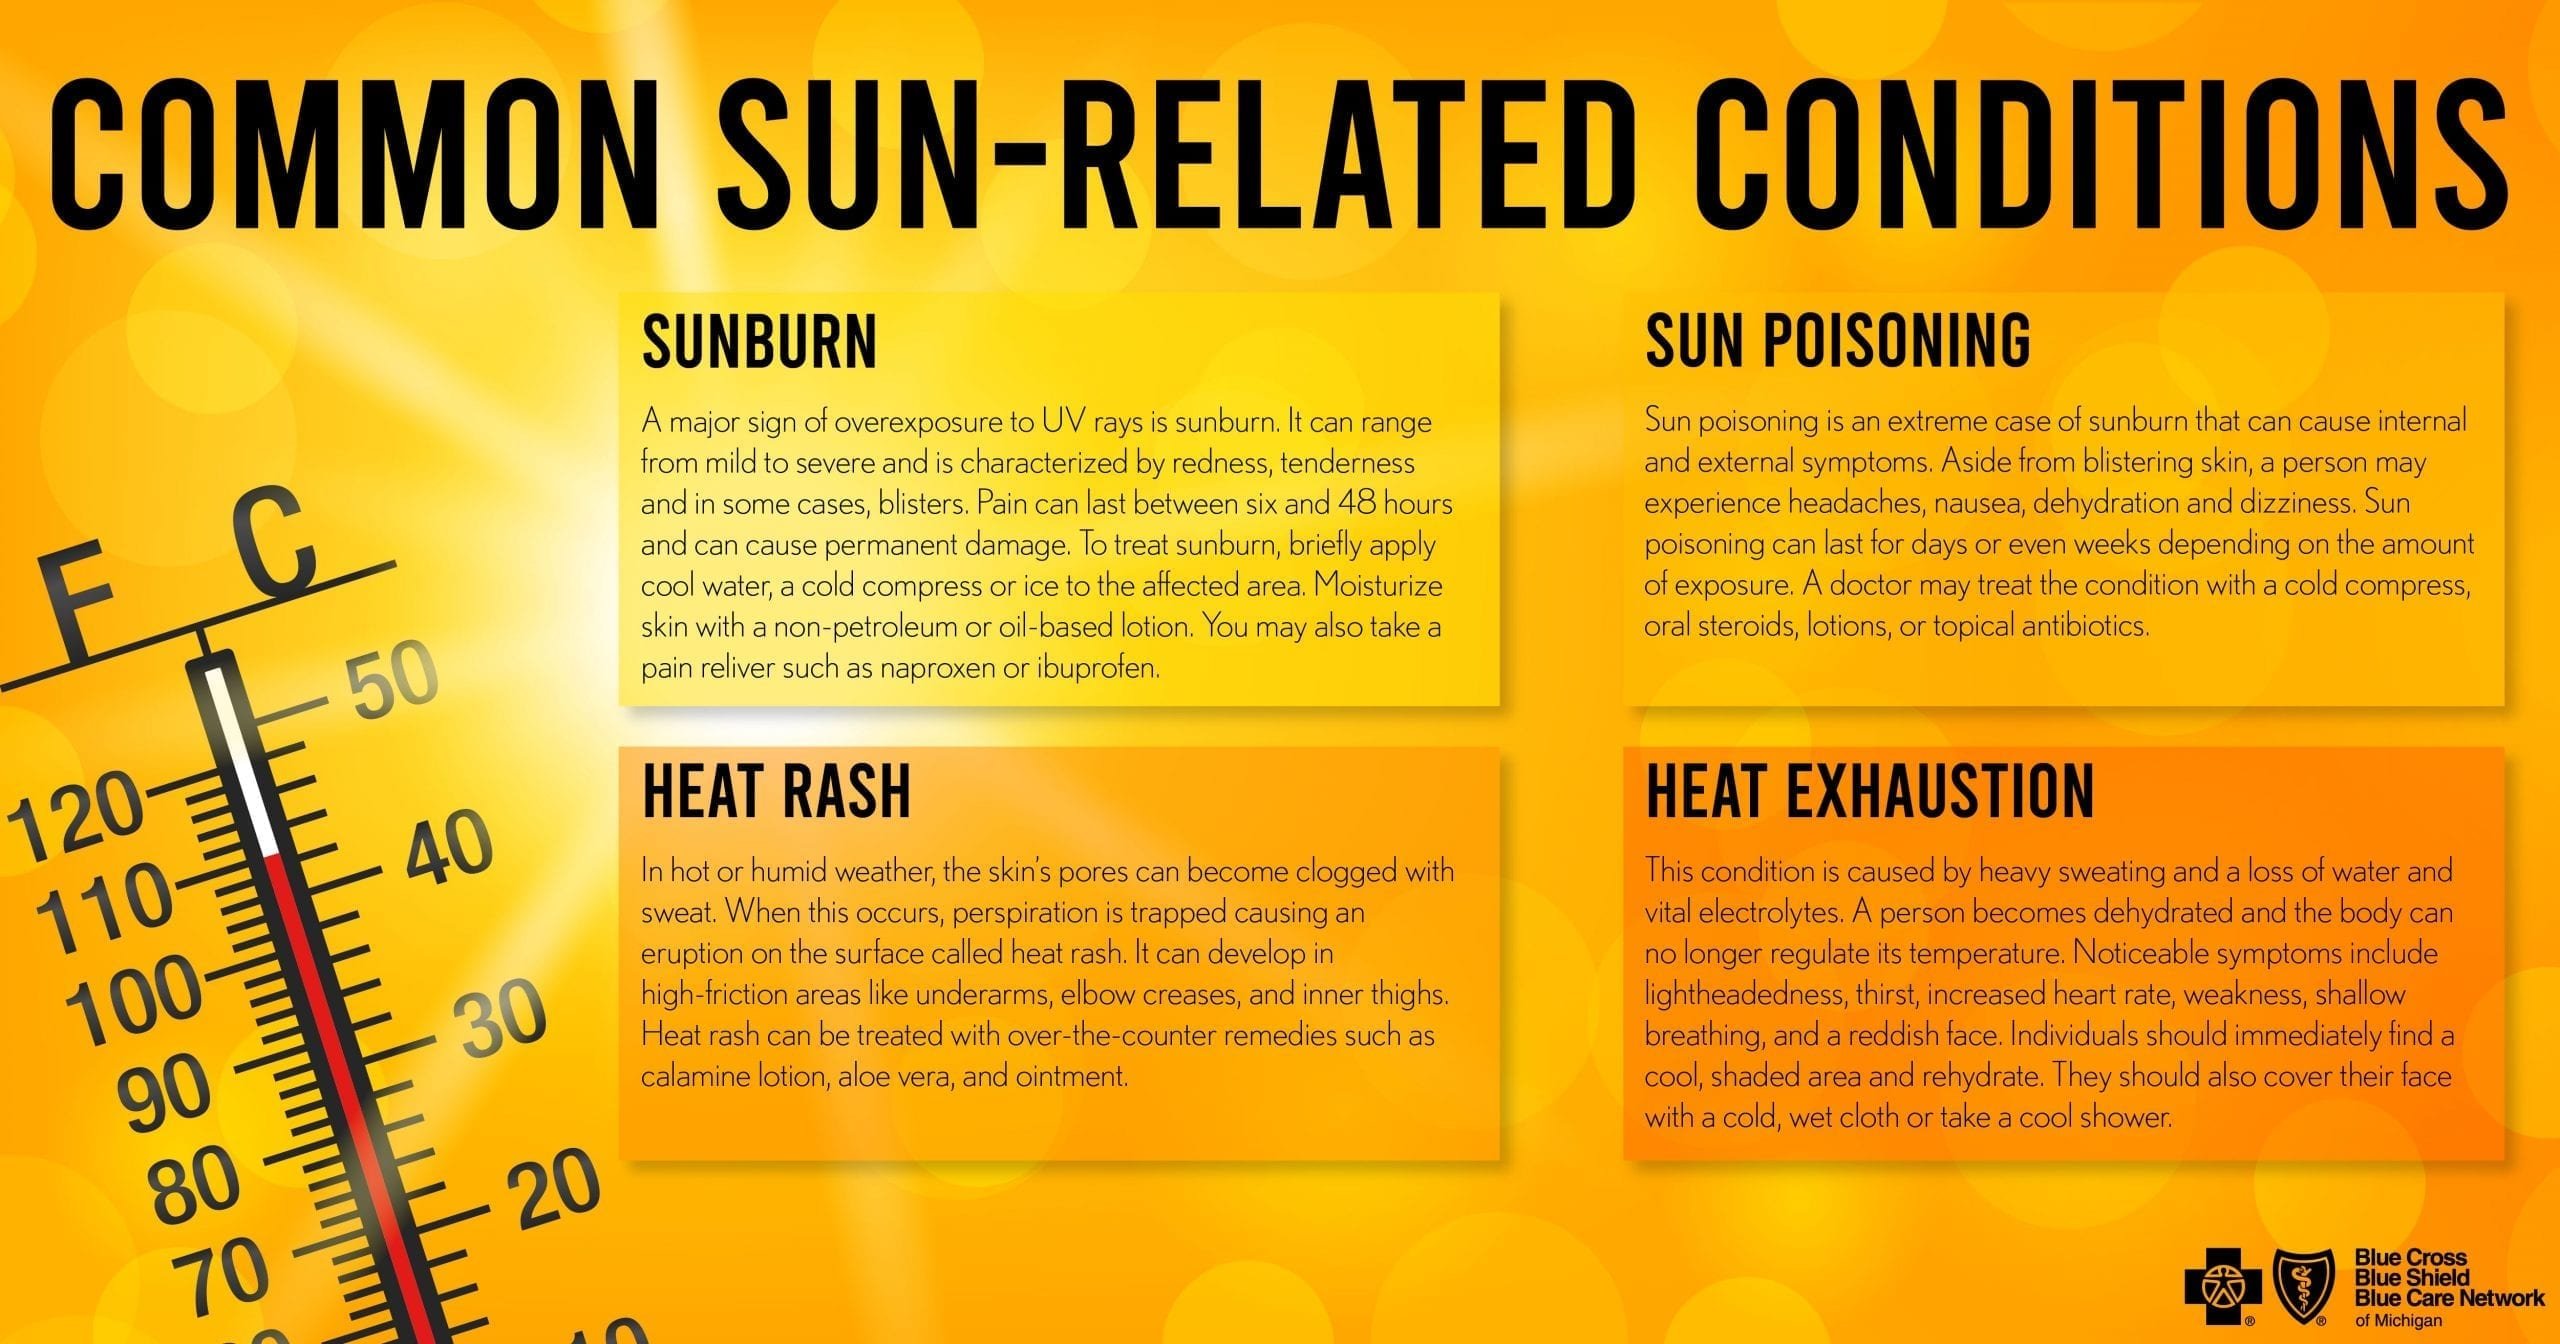 Infographic explaining sun-related conditions